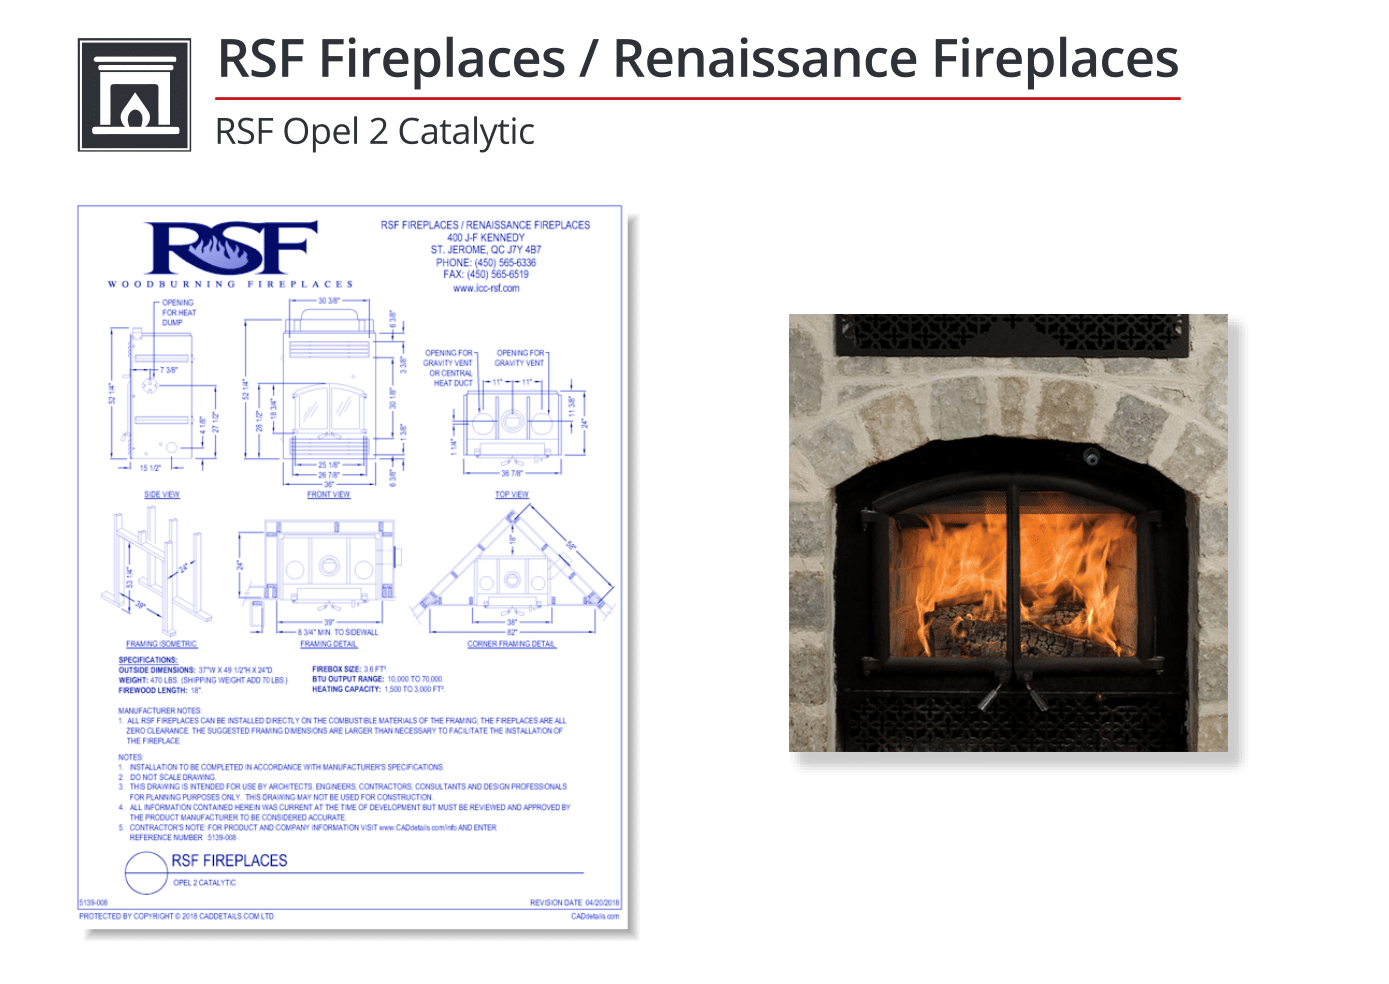 RSF-Fireplaces-RSF-Opel-2-Catalytoc-Fireplace-CADdrawing.png